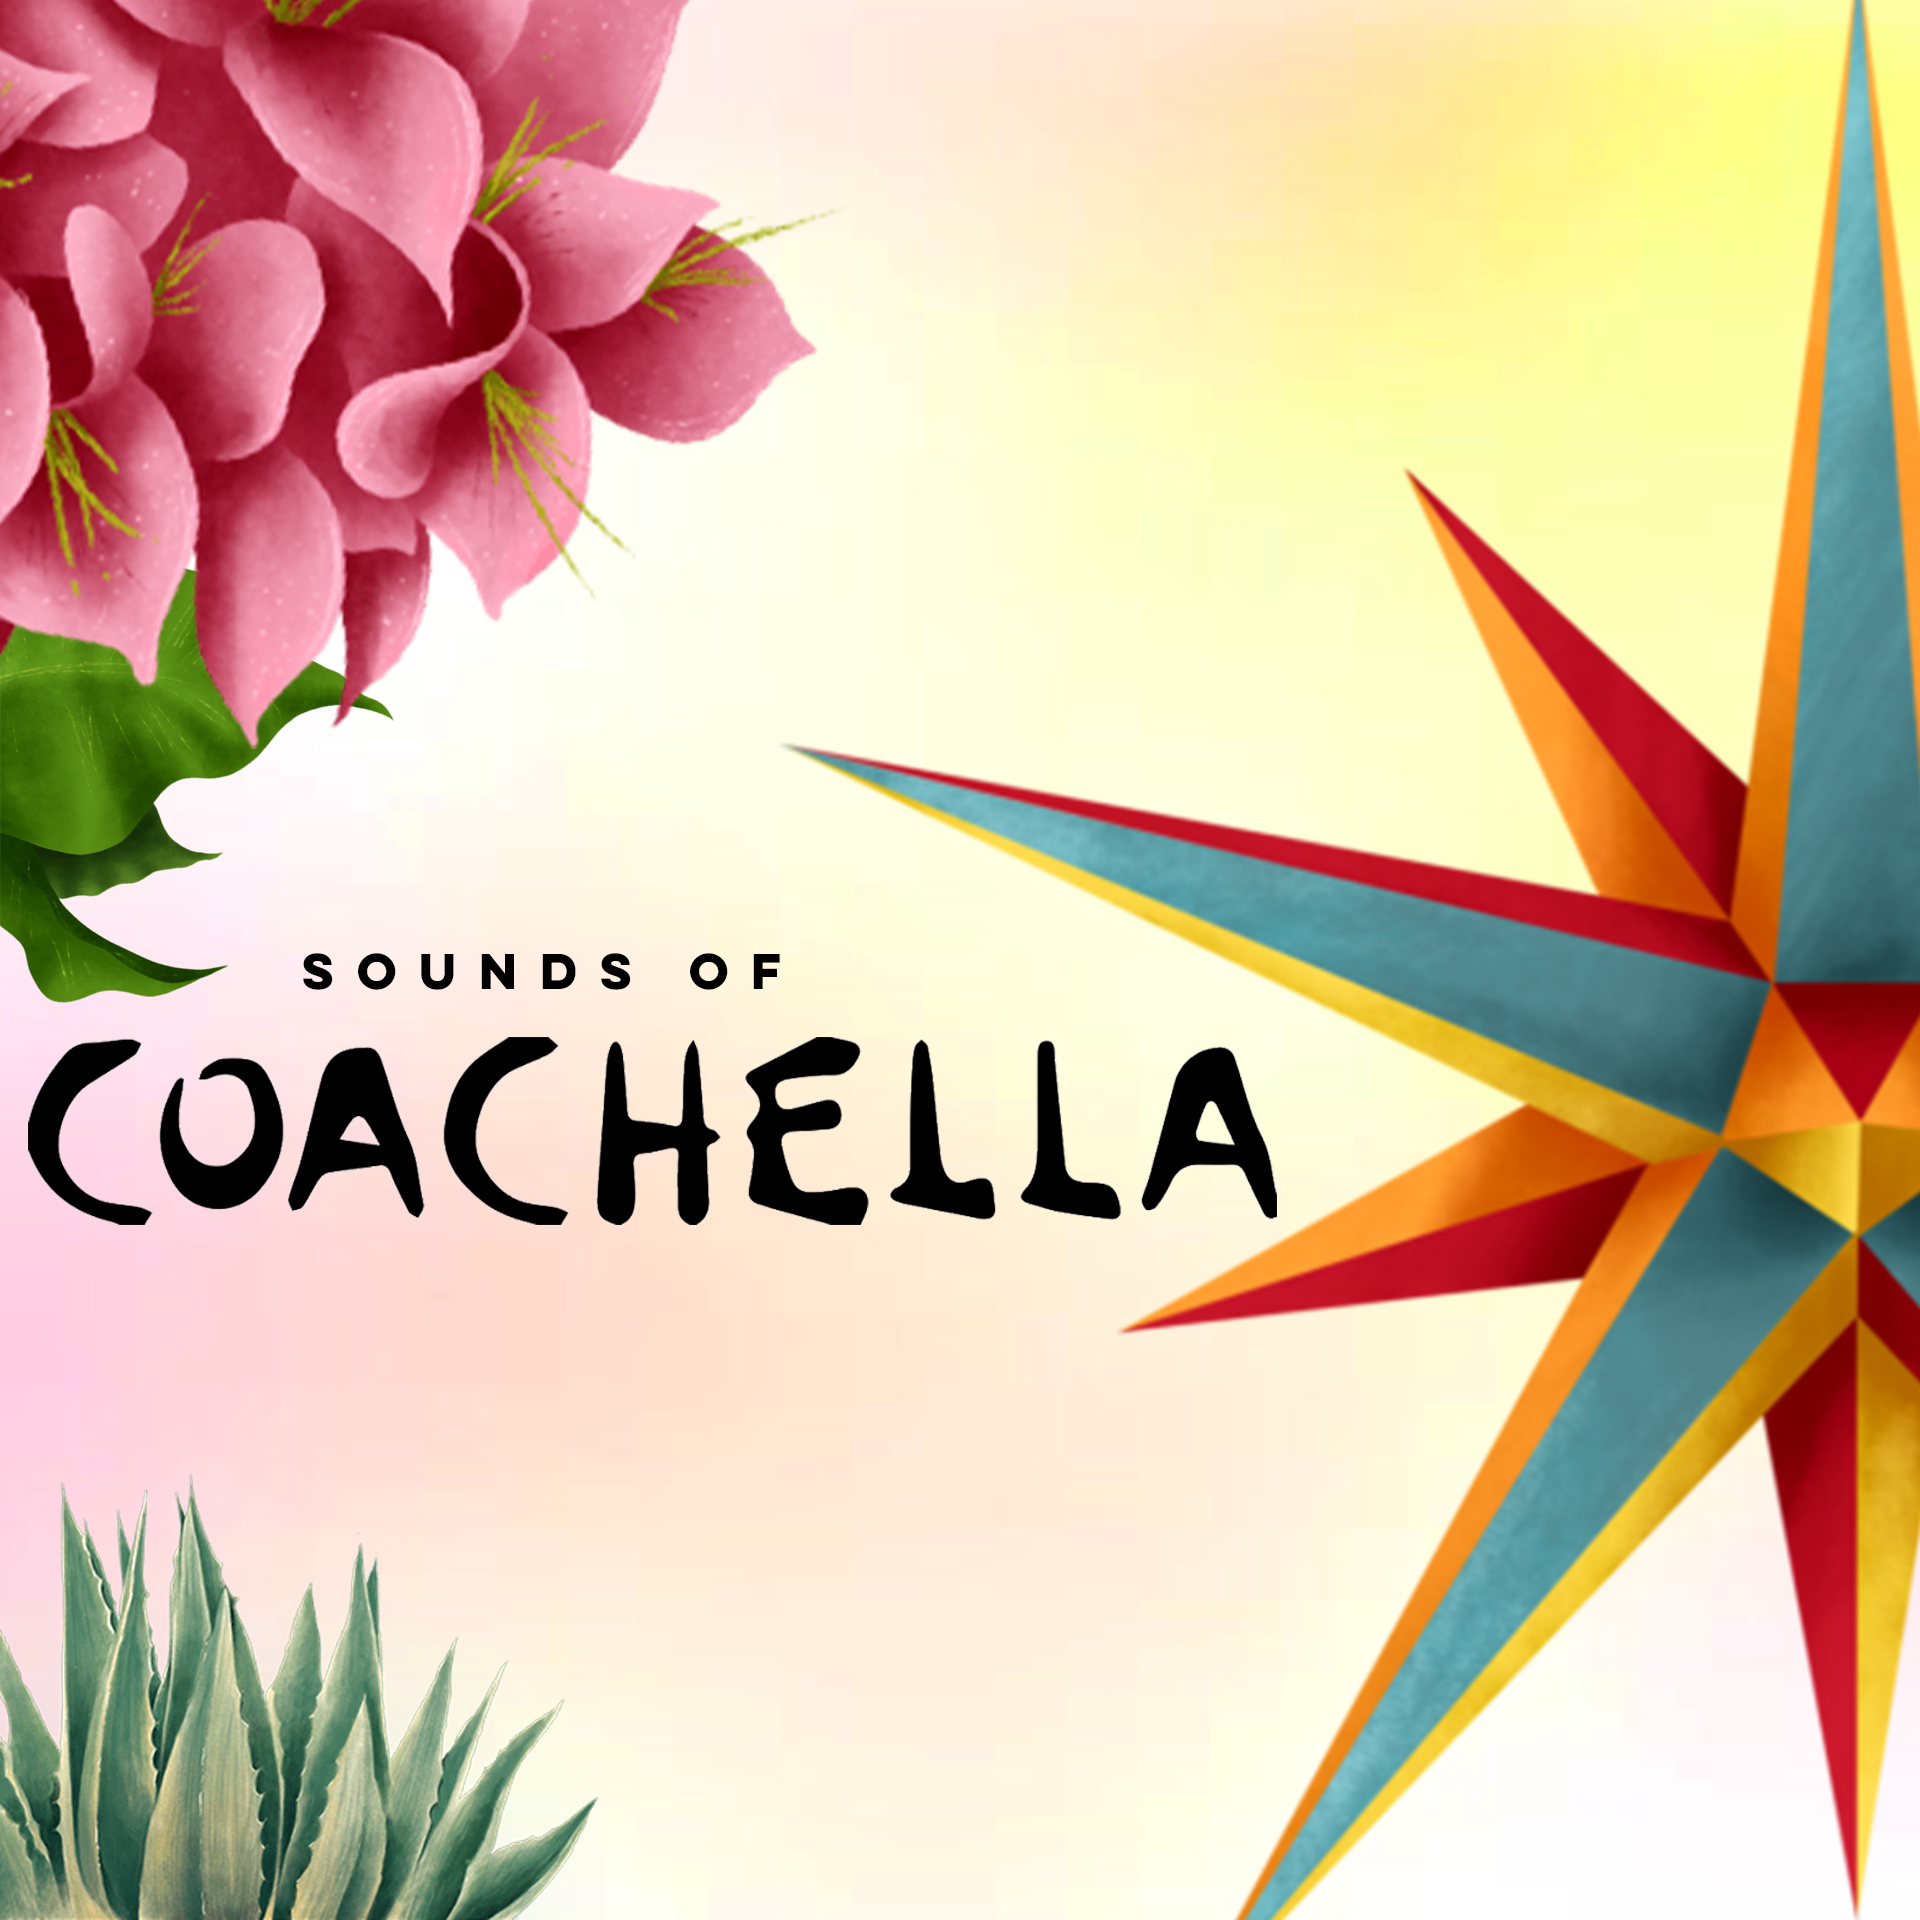 Coachella art.jpg